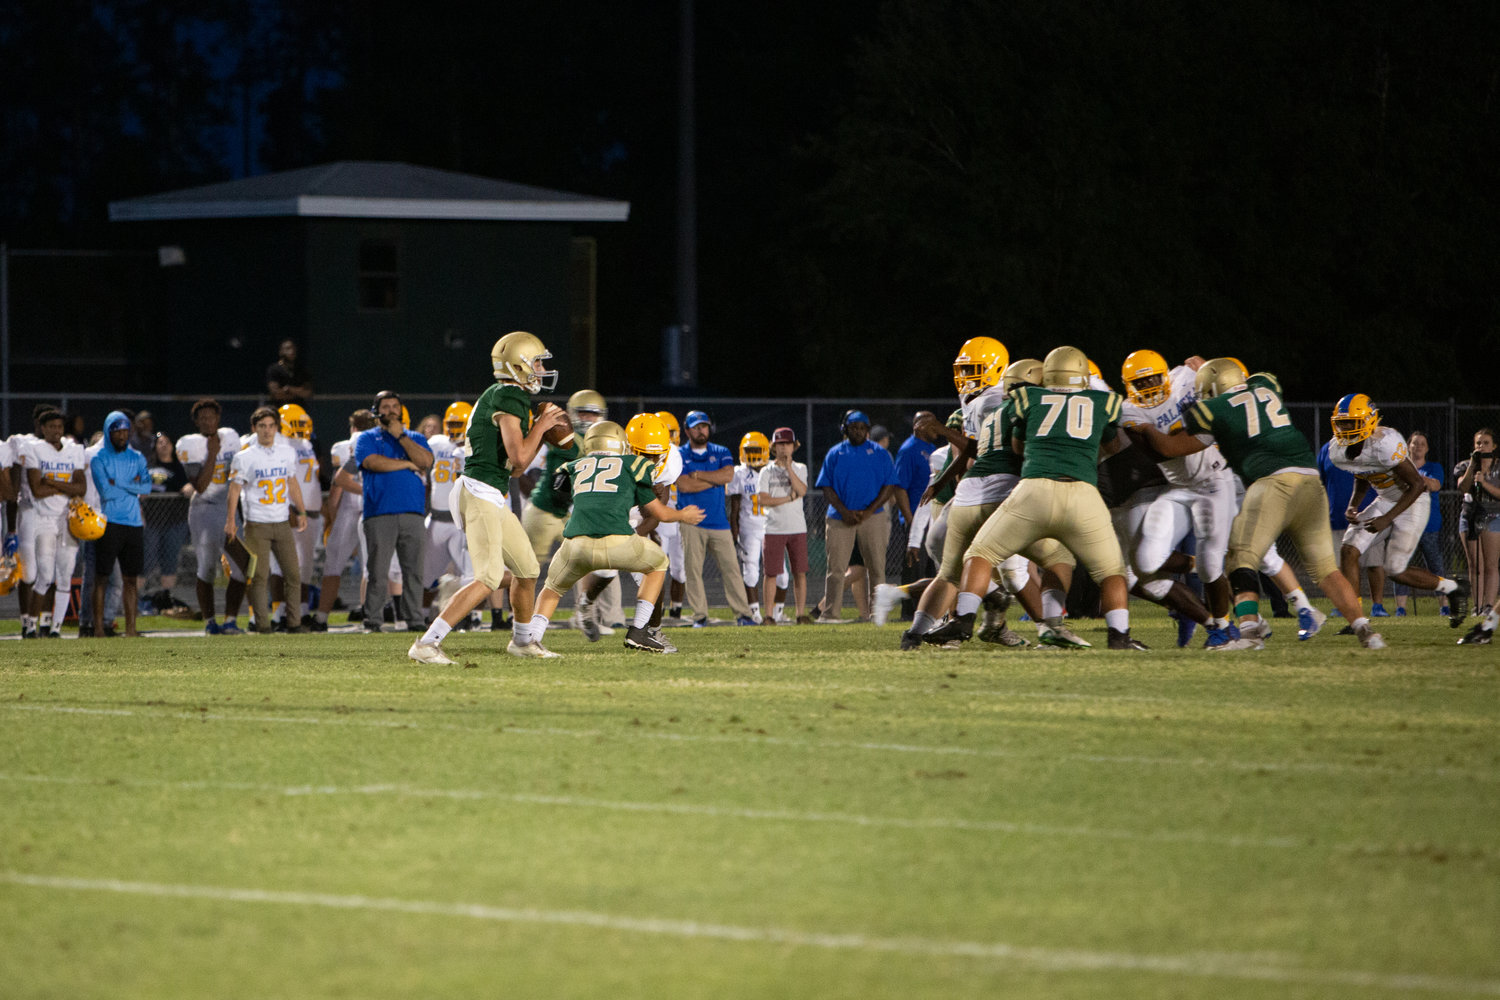 Nease moves the ball upfield against Palatka in their 48-35 win in the spring game on Friday.